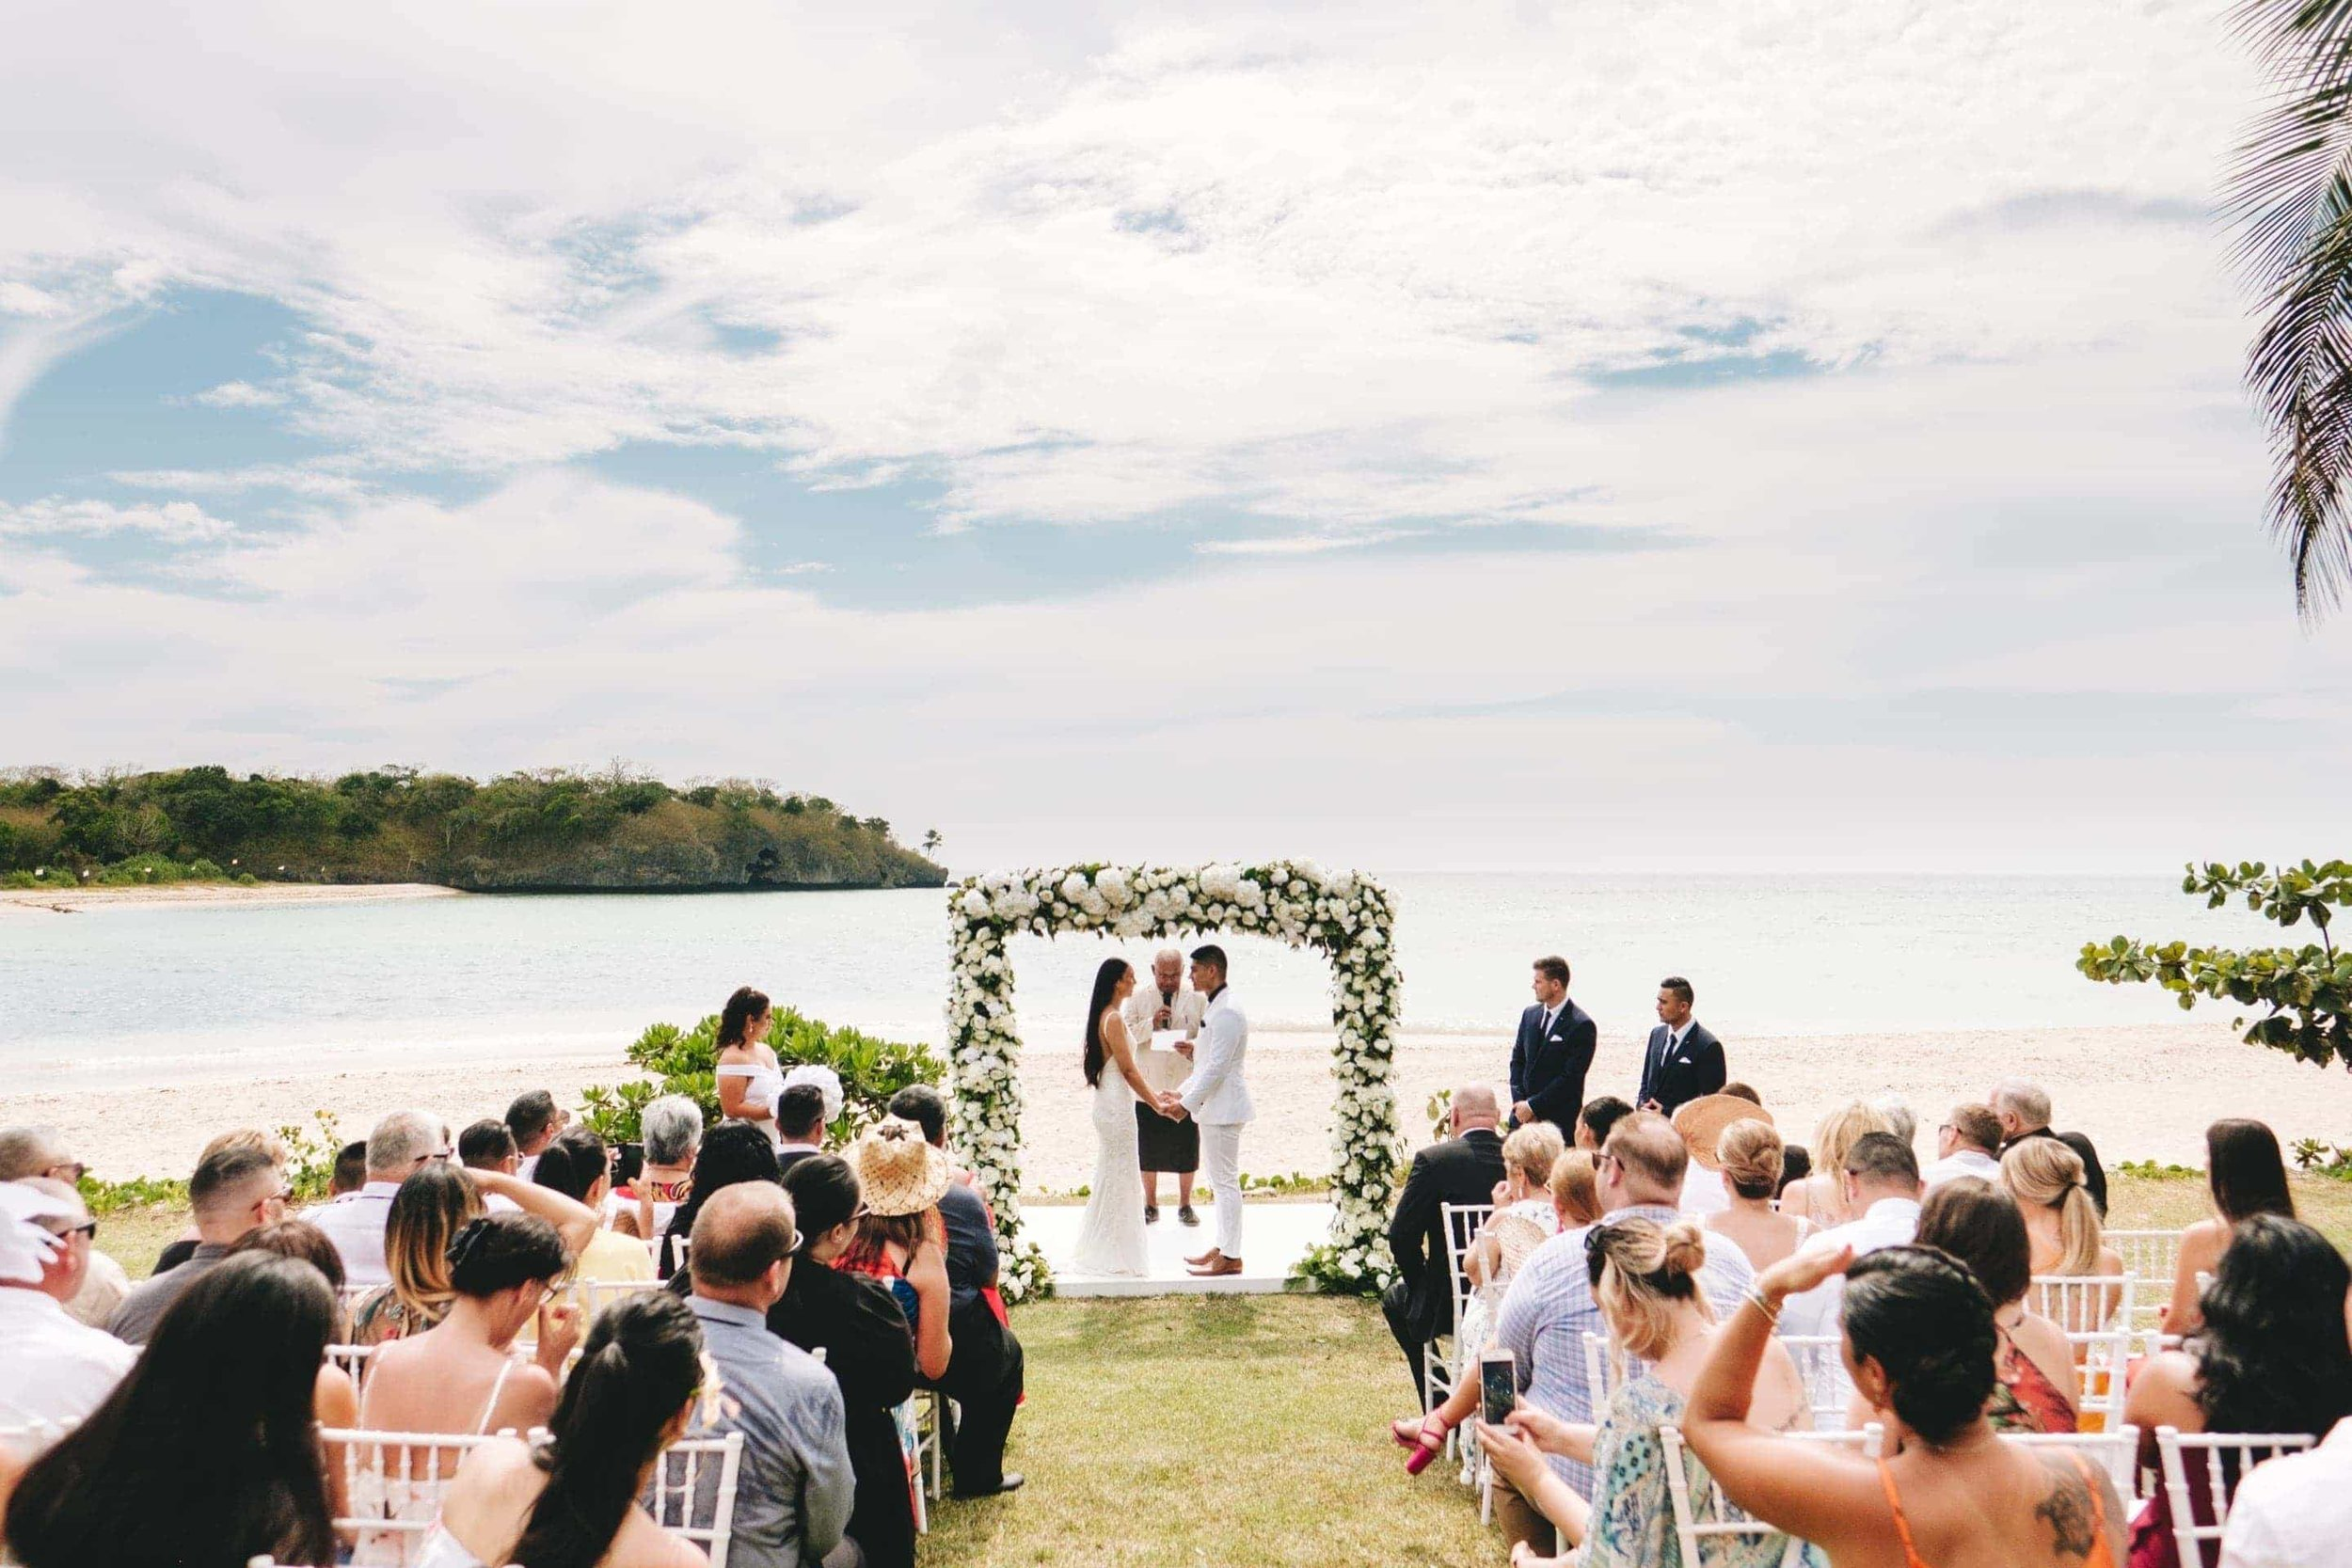 a wide shot of the wedding ceremony